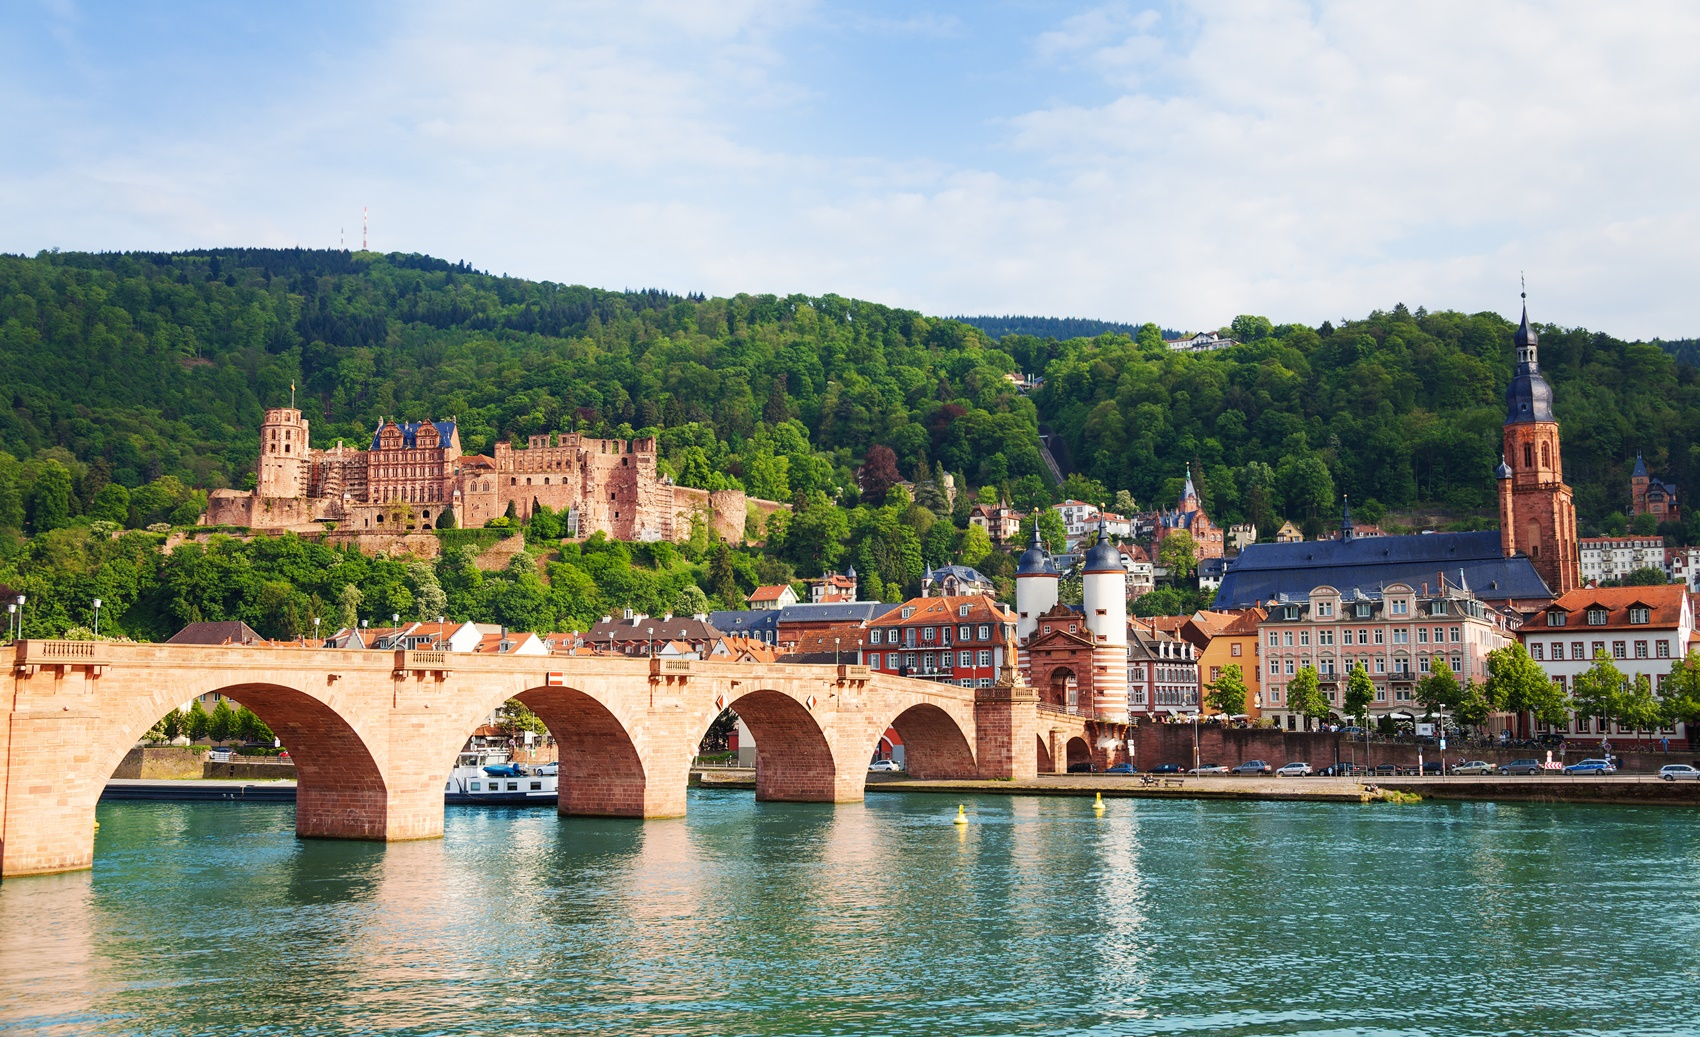 Beautiful view of Alte Brucke bridge and castle